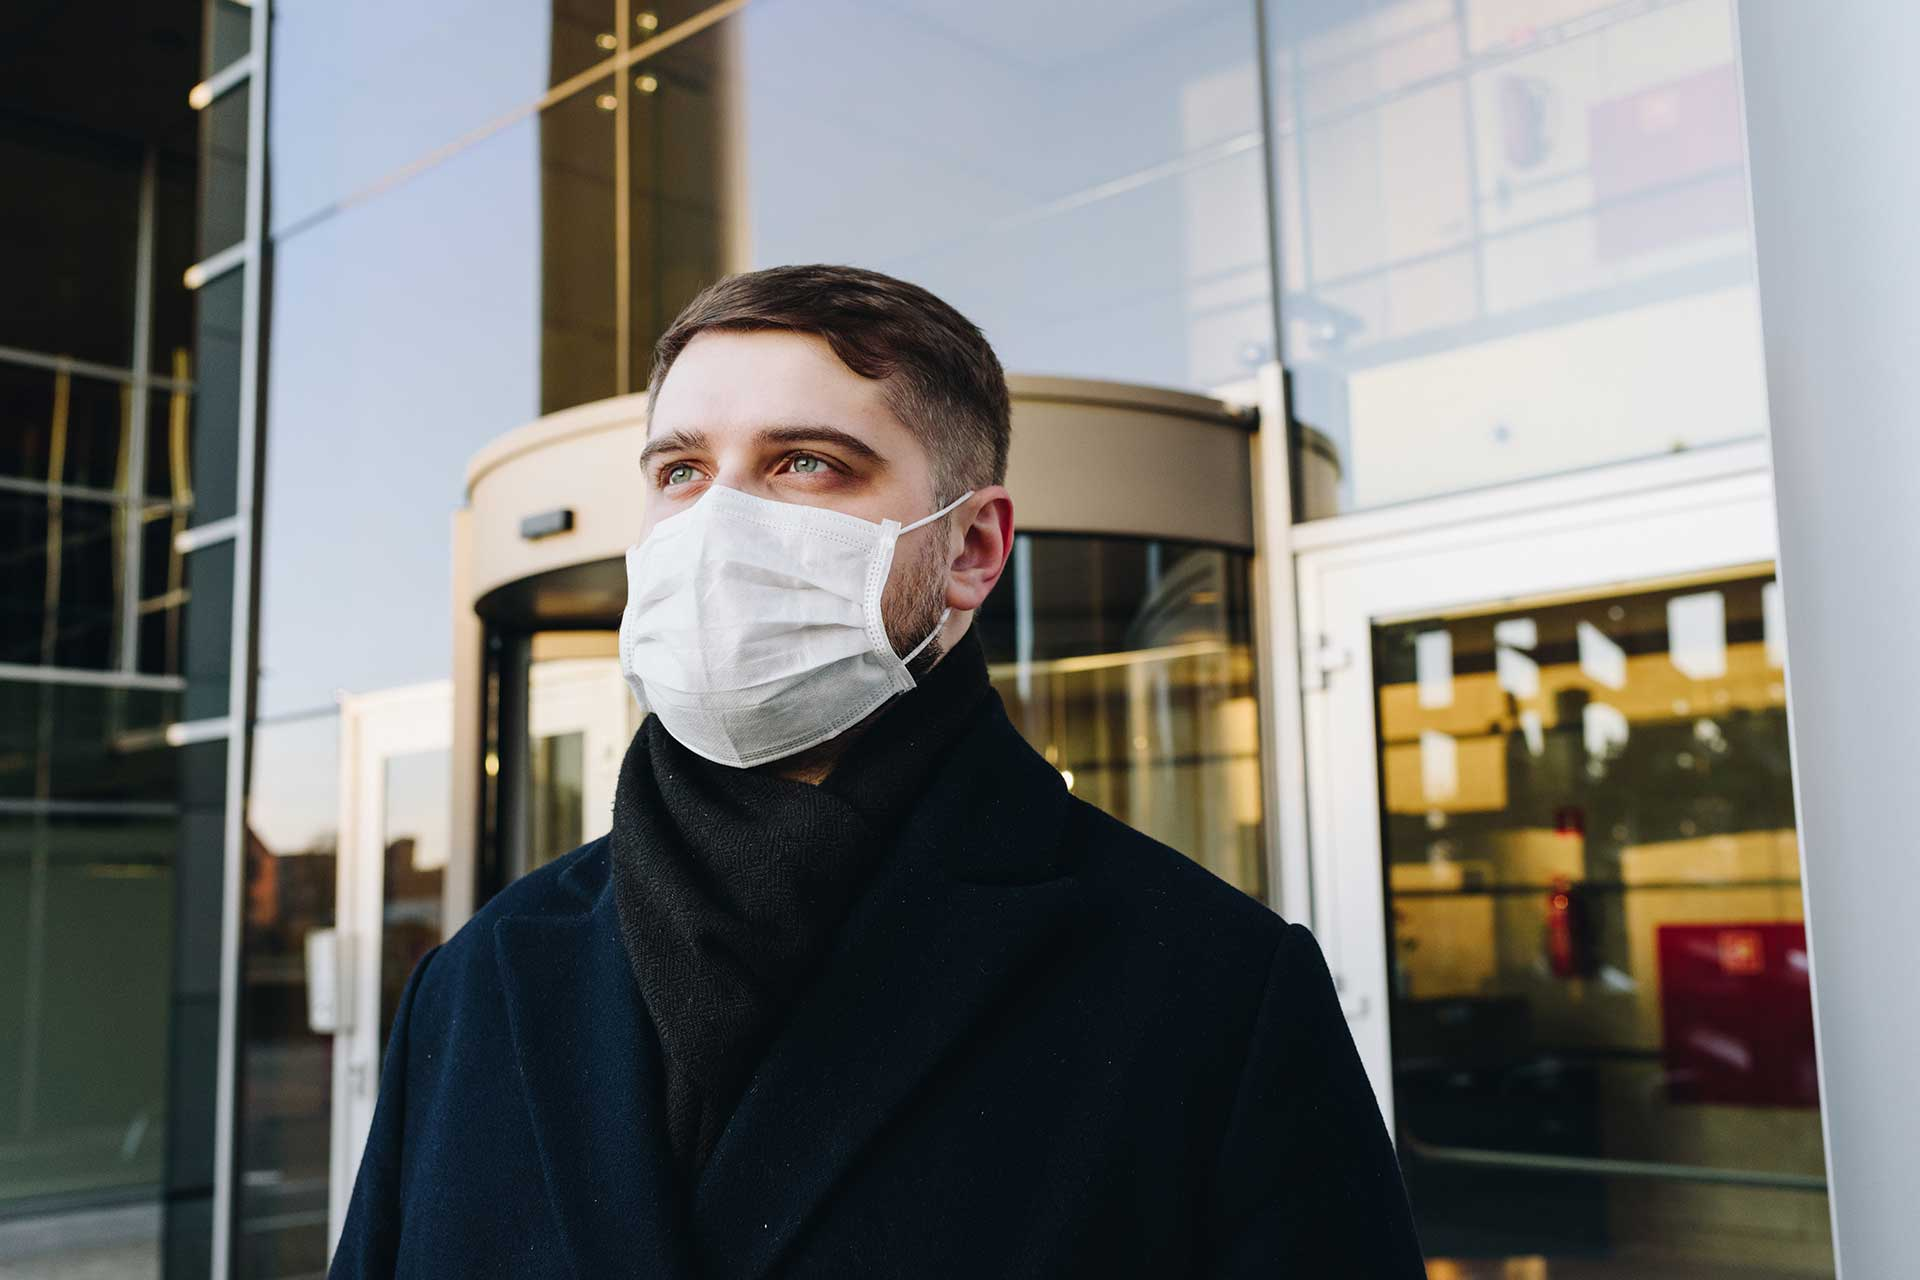 Person outside building wearing a face mask